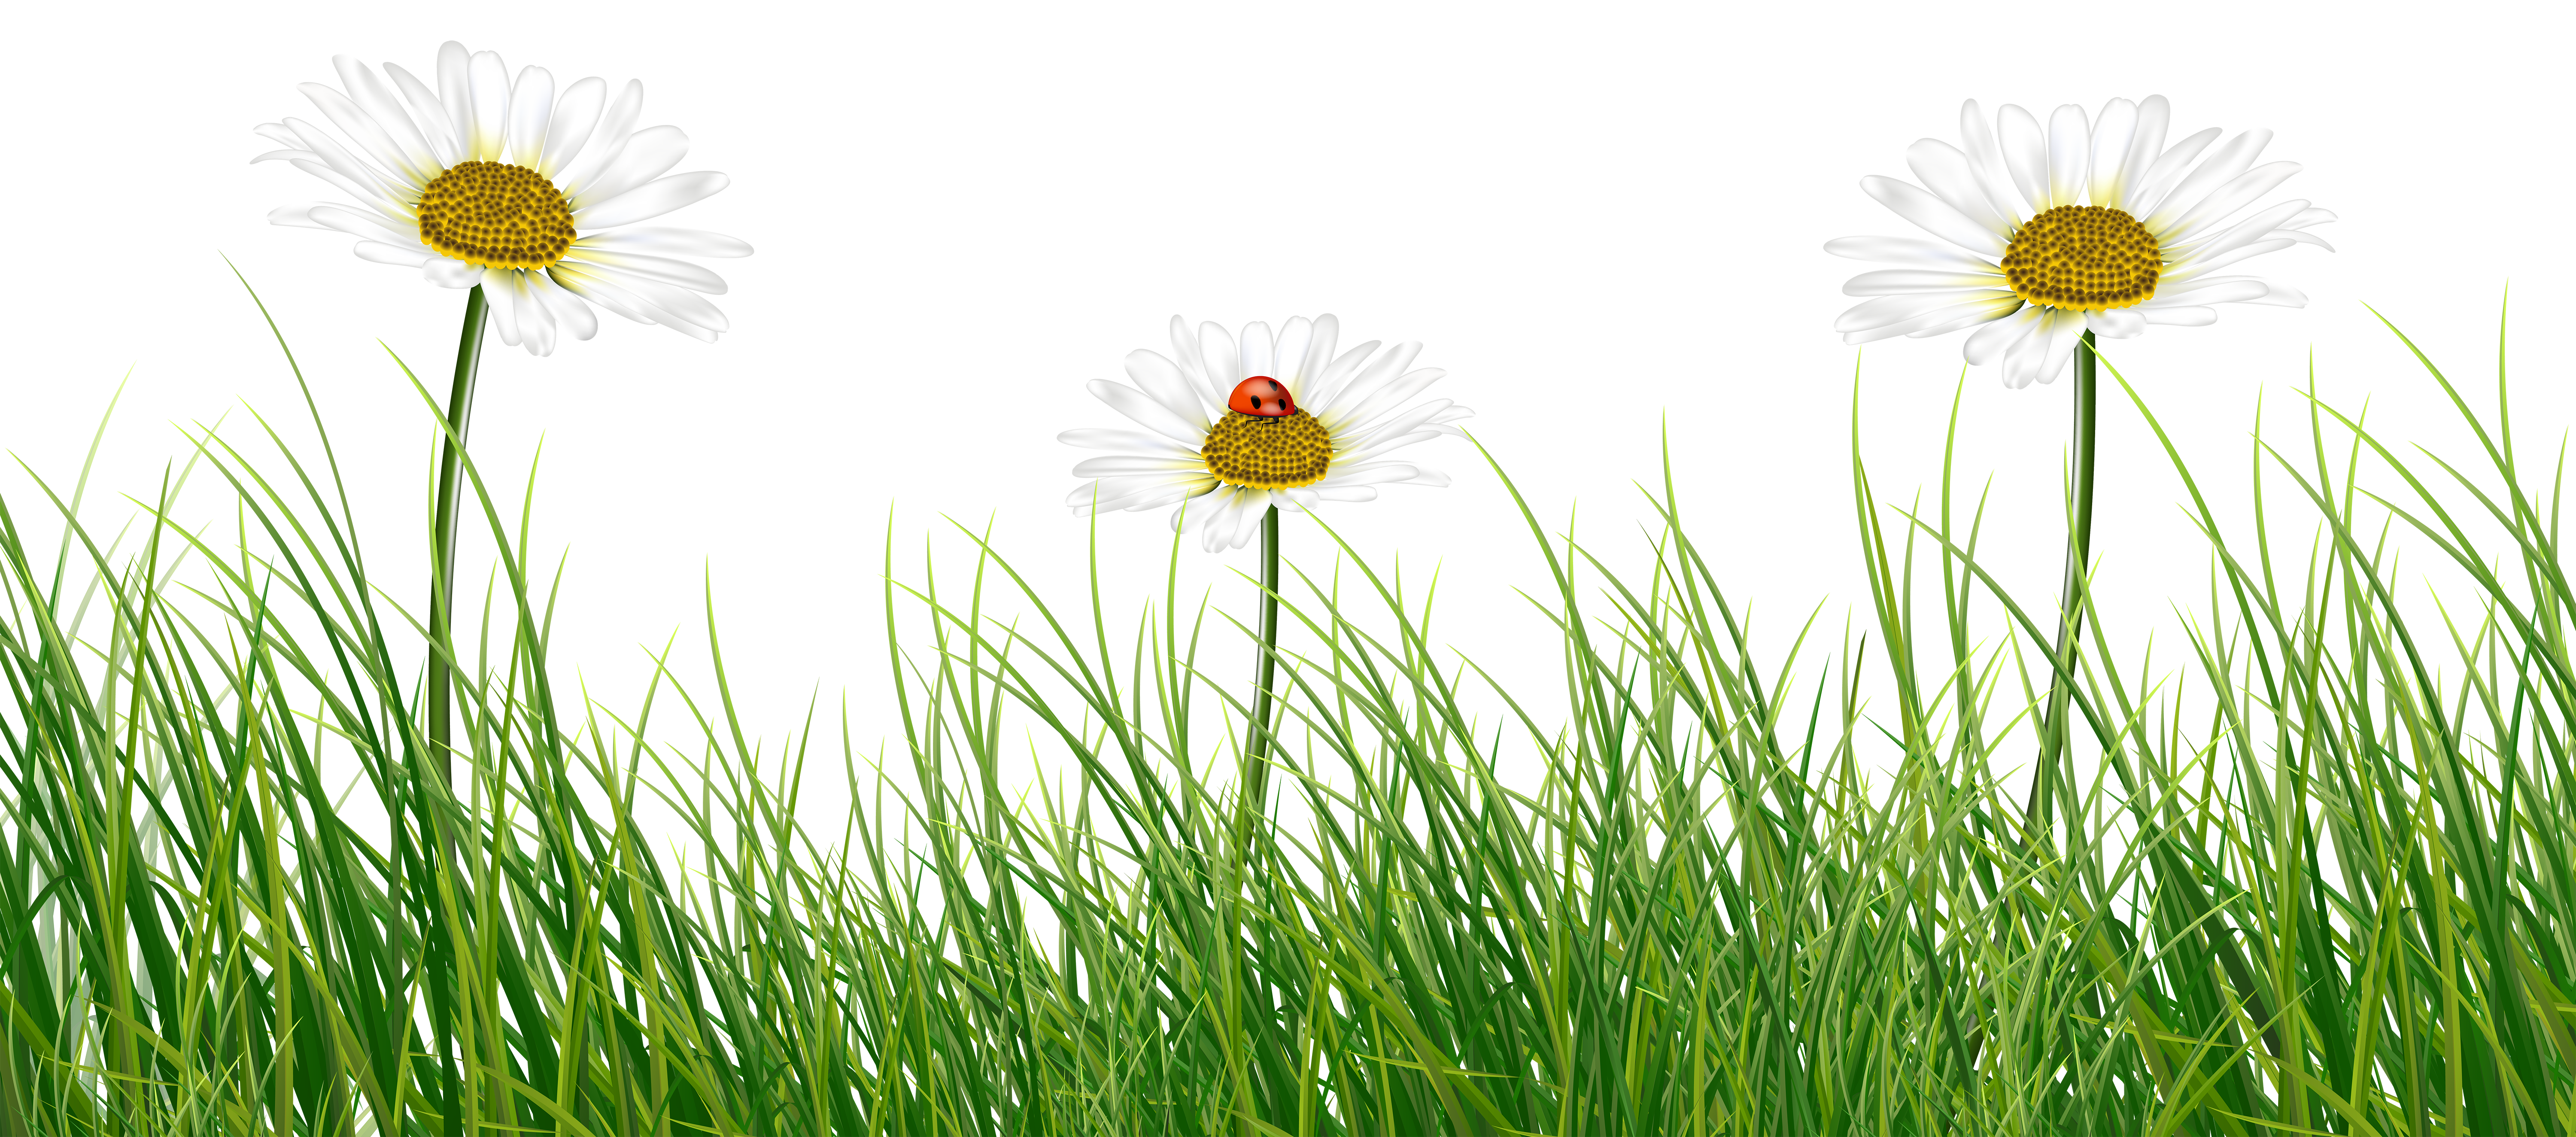 png free stock Green grass with daisies. Ladybugs clipart family.